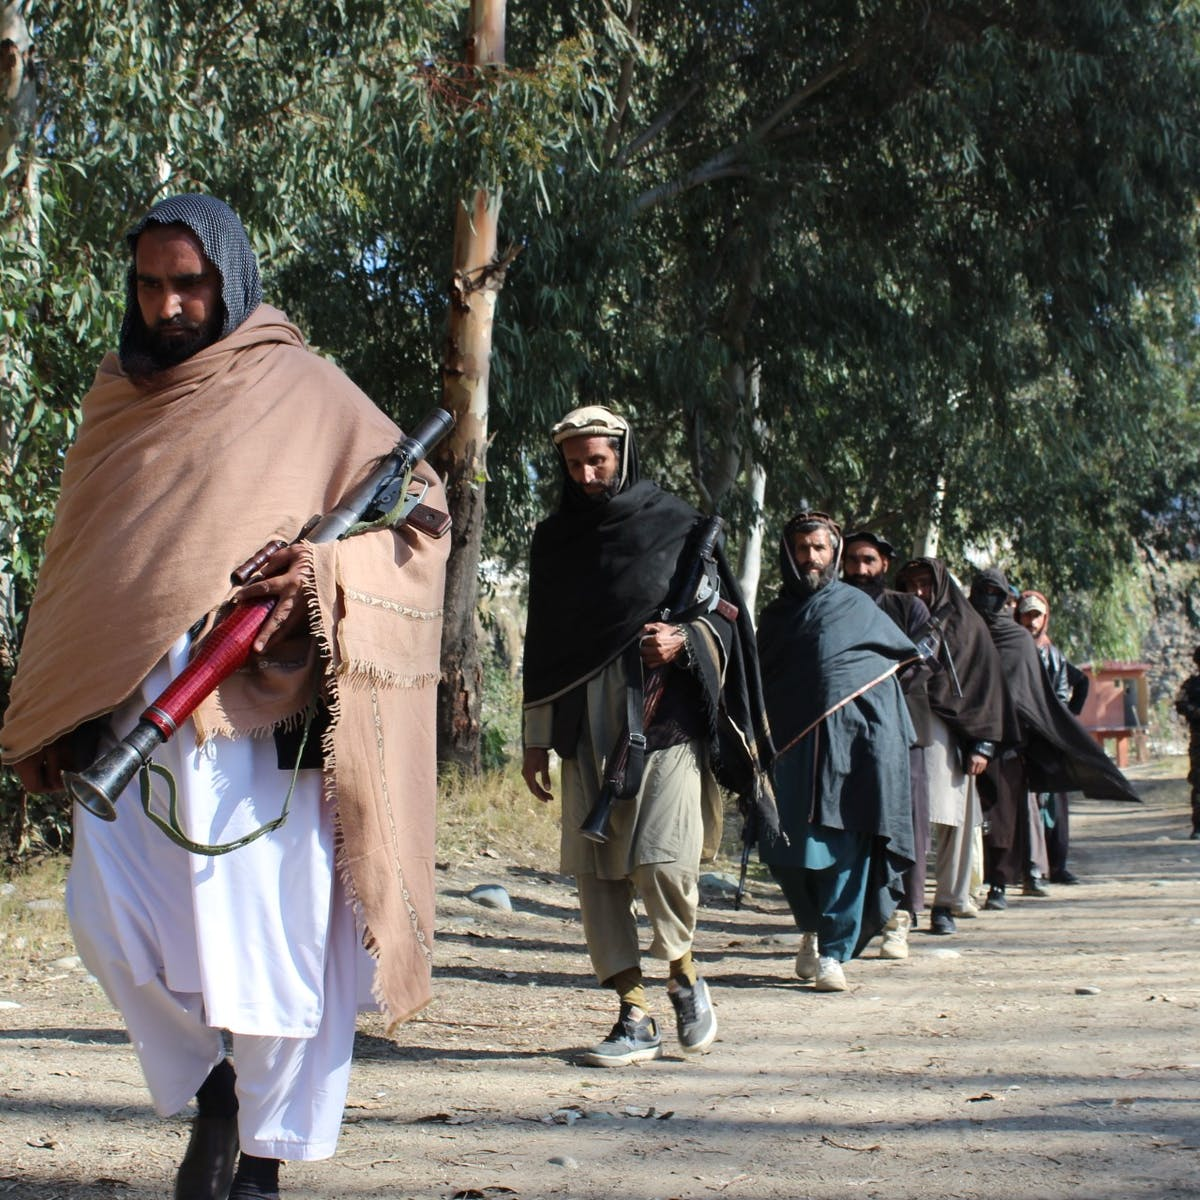 Afghanistan After The Us Withdrawal The Taliban Speak More Moderately But Their Extremist Rule Hasn T Evolved In 20 Years